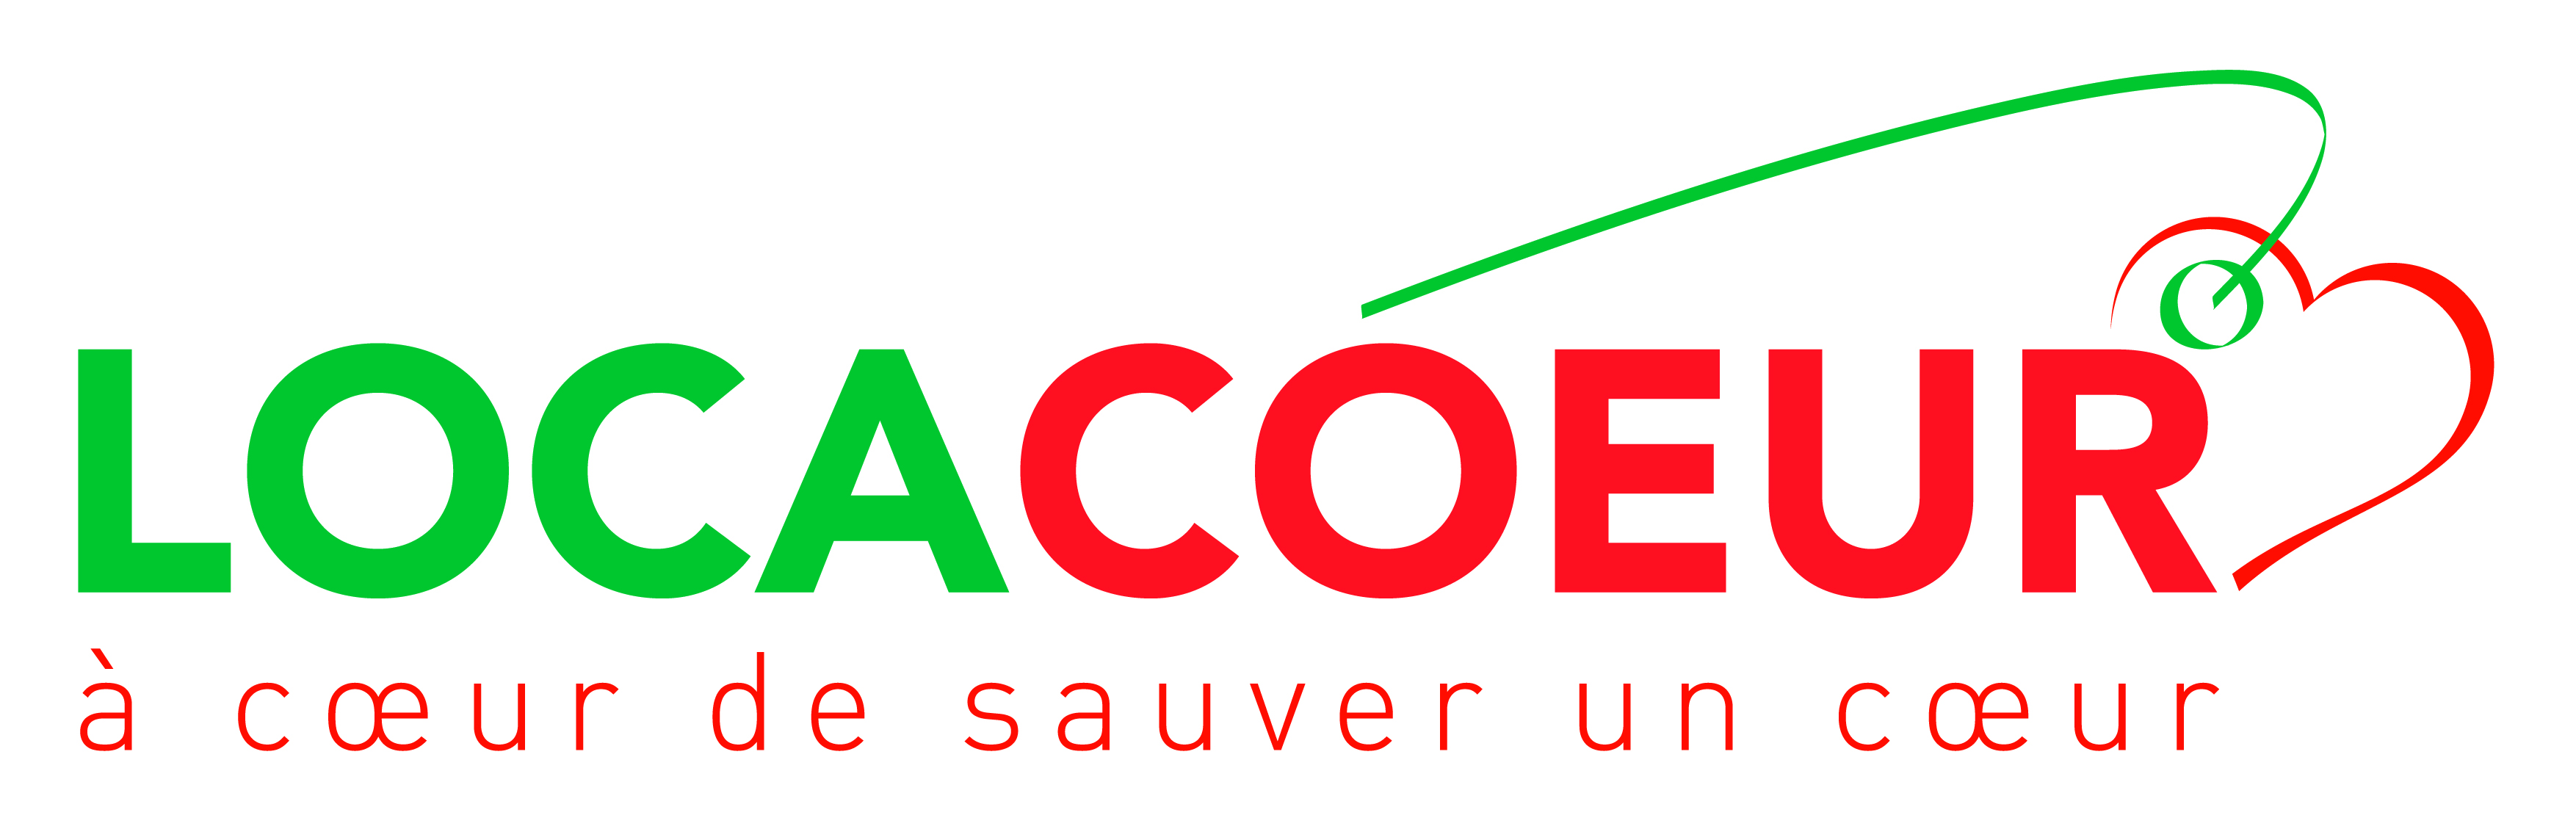 LOCACOEUR - Logo 2017 Rectangle.jpg